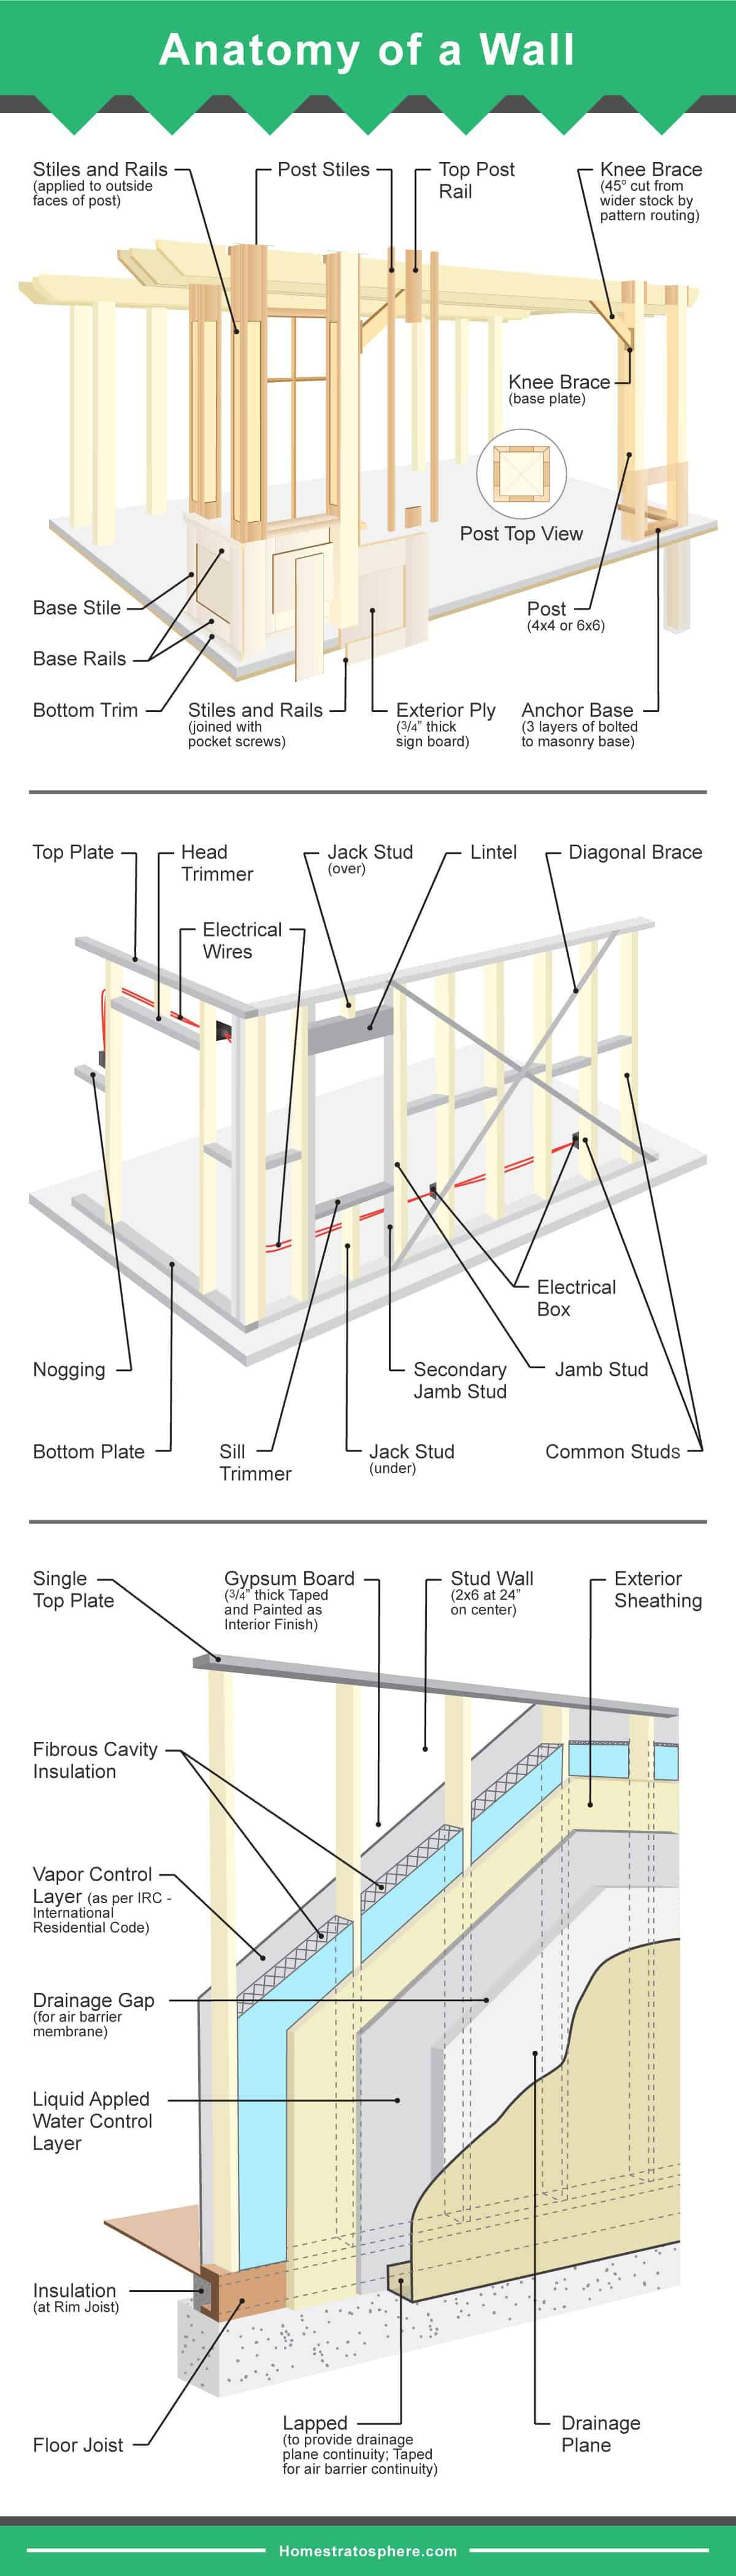 house insulation diagram plantar fasciitis parts of a wall 3 diagrams framed and layers